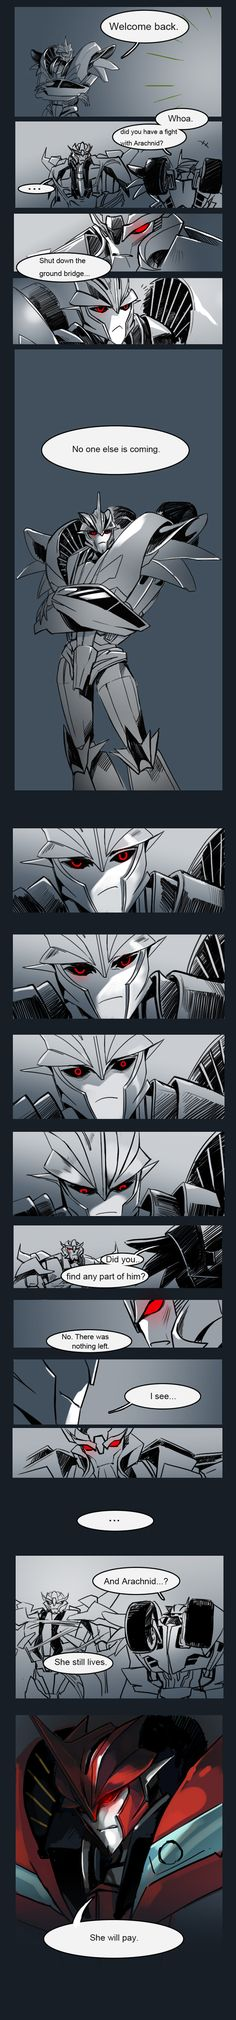 TFP-S2-ep33- Angry by evilwinnie on DeviantArt